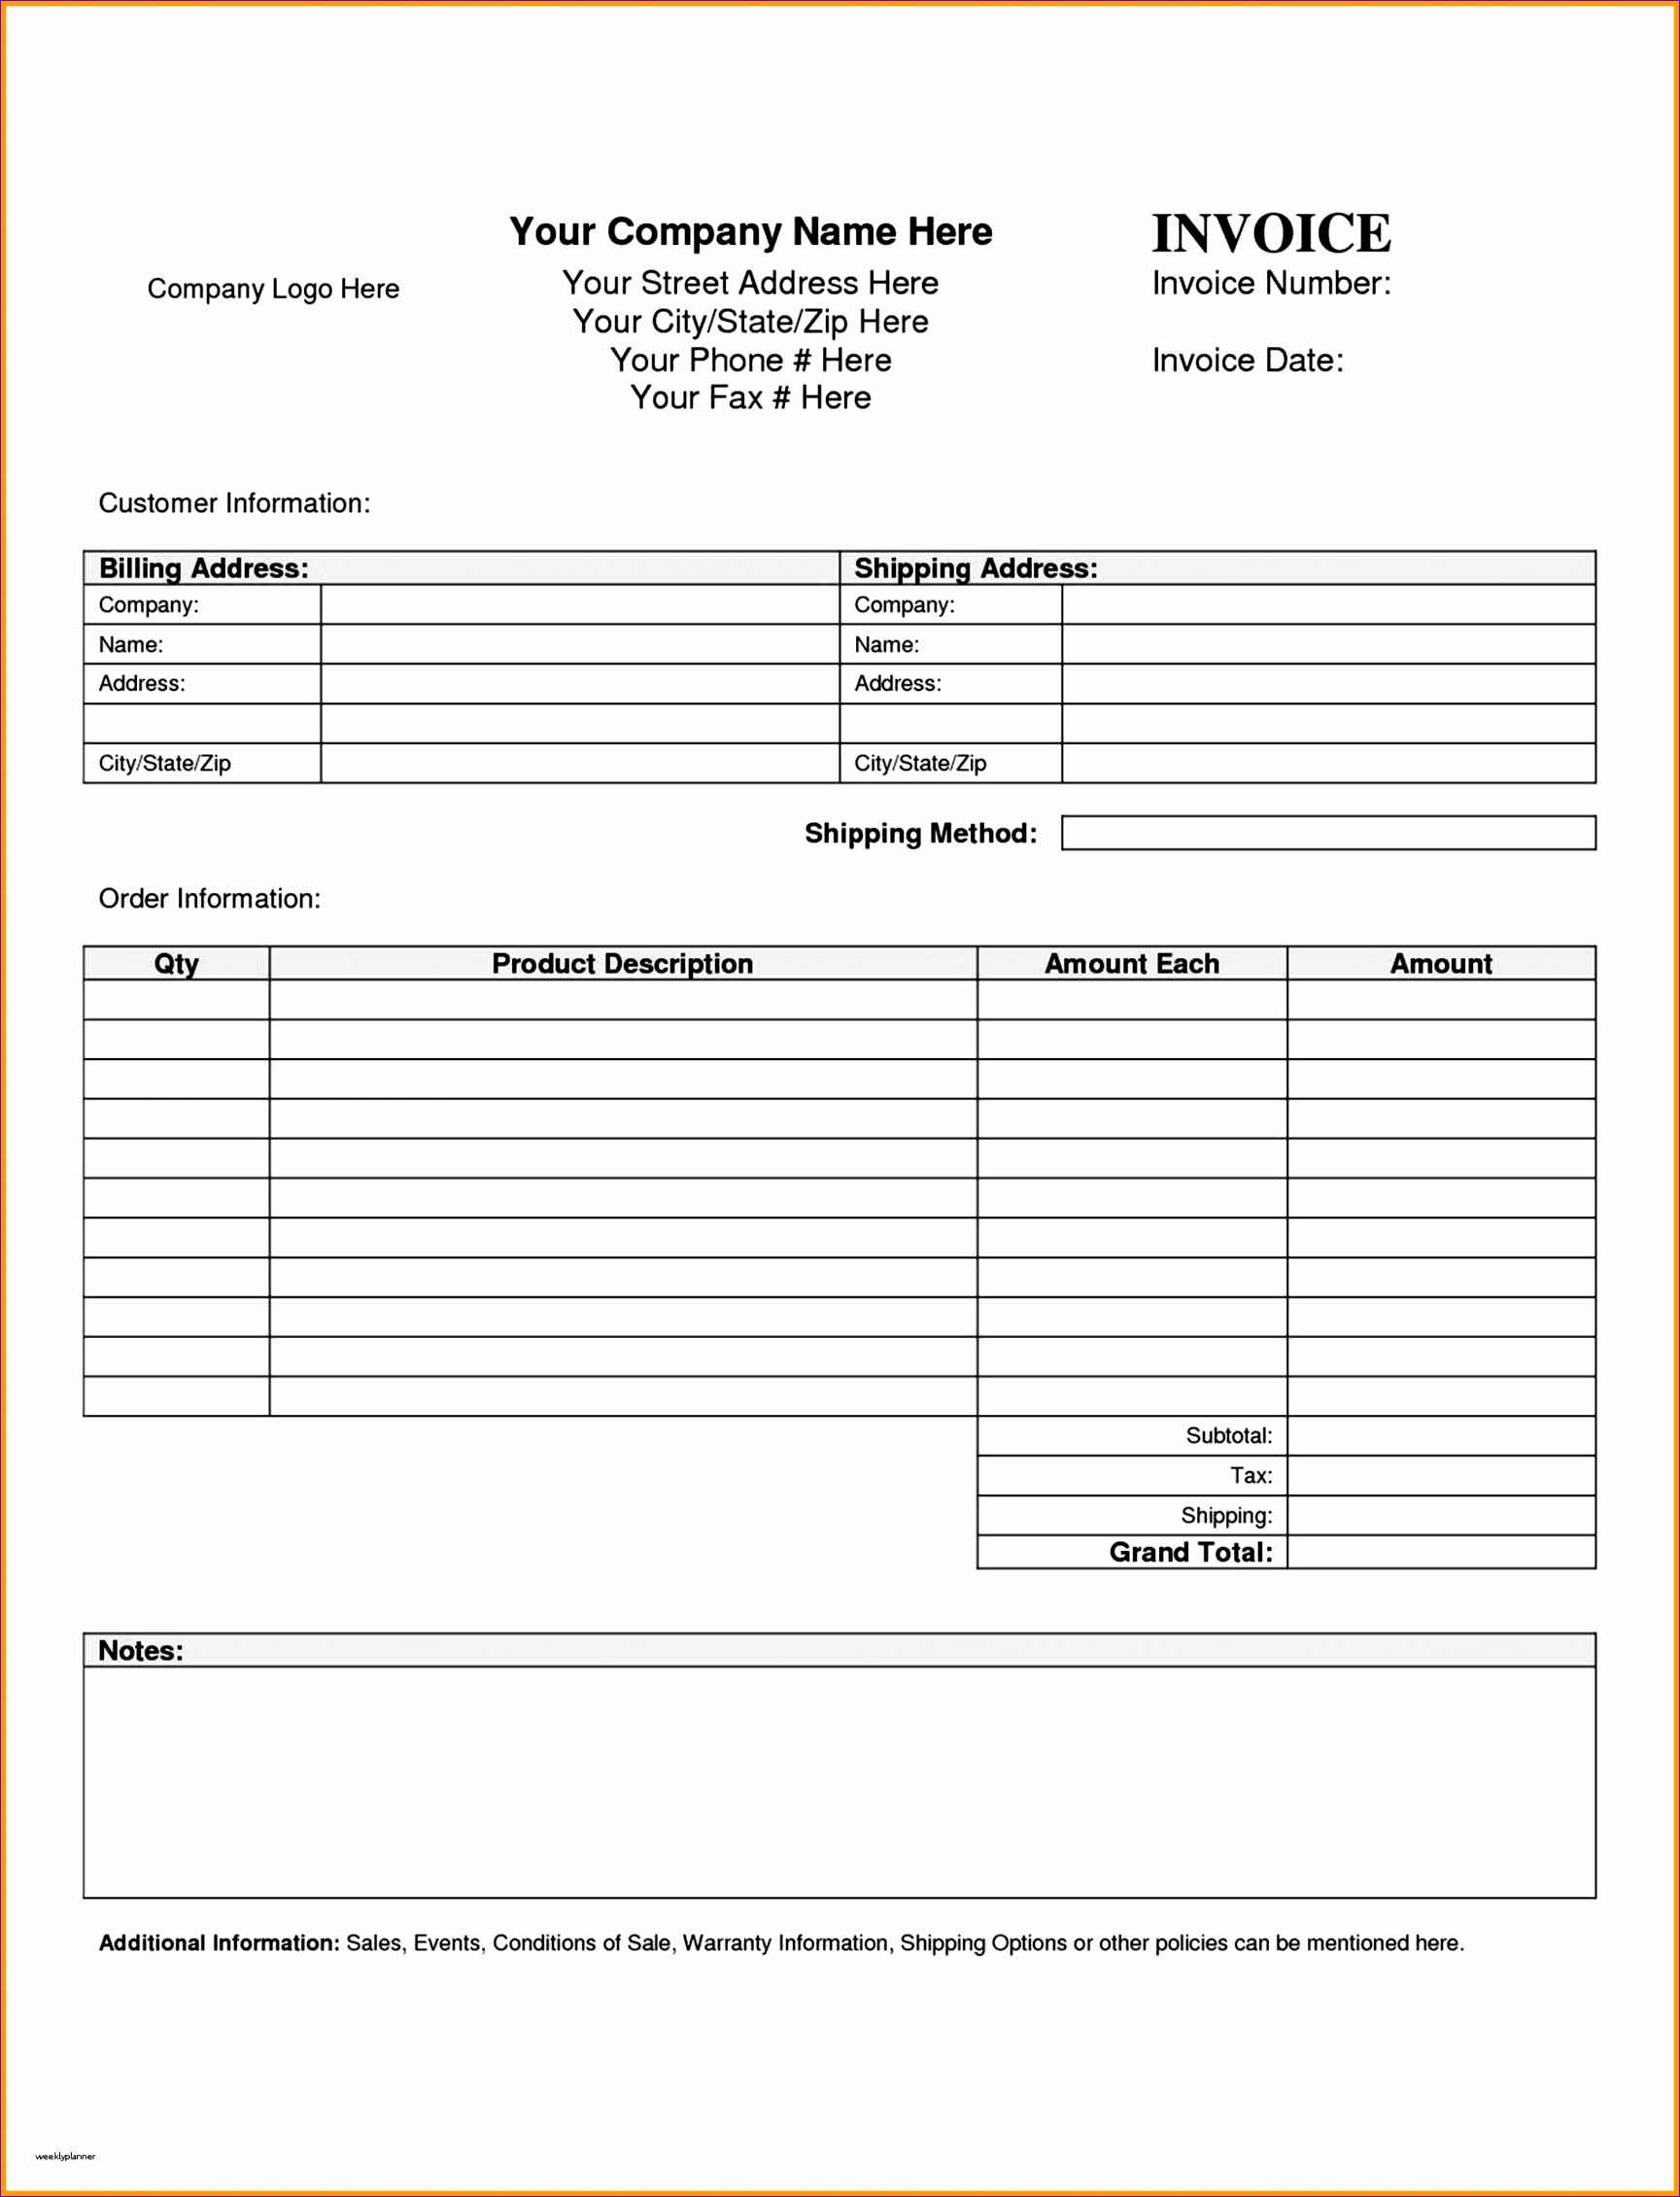 Contact Information Template Excel Ncfkn Elegant Doc Free Printable order form Template – order form